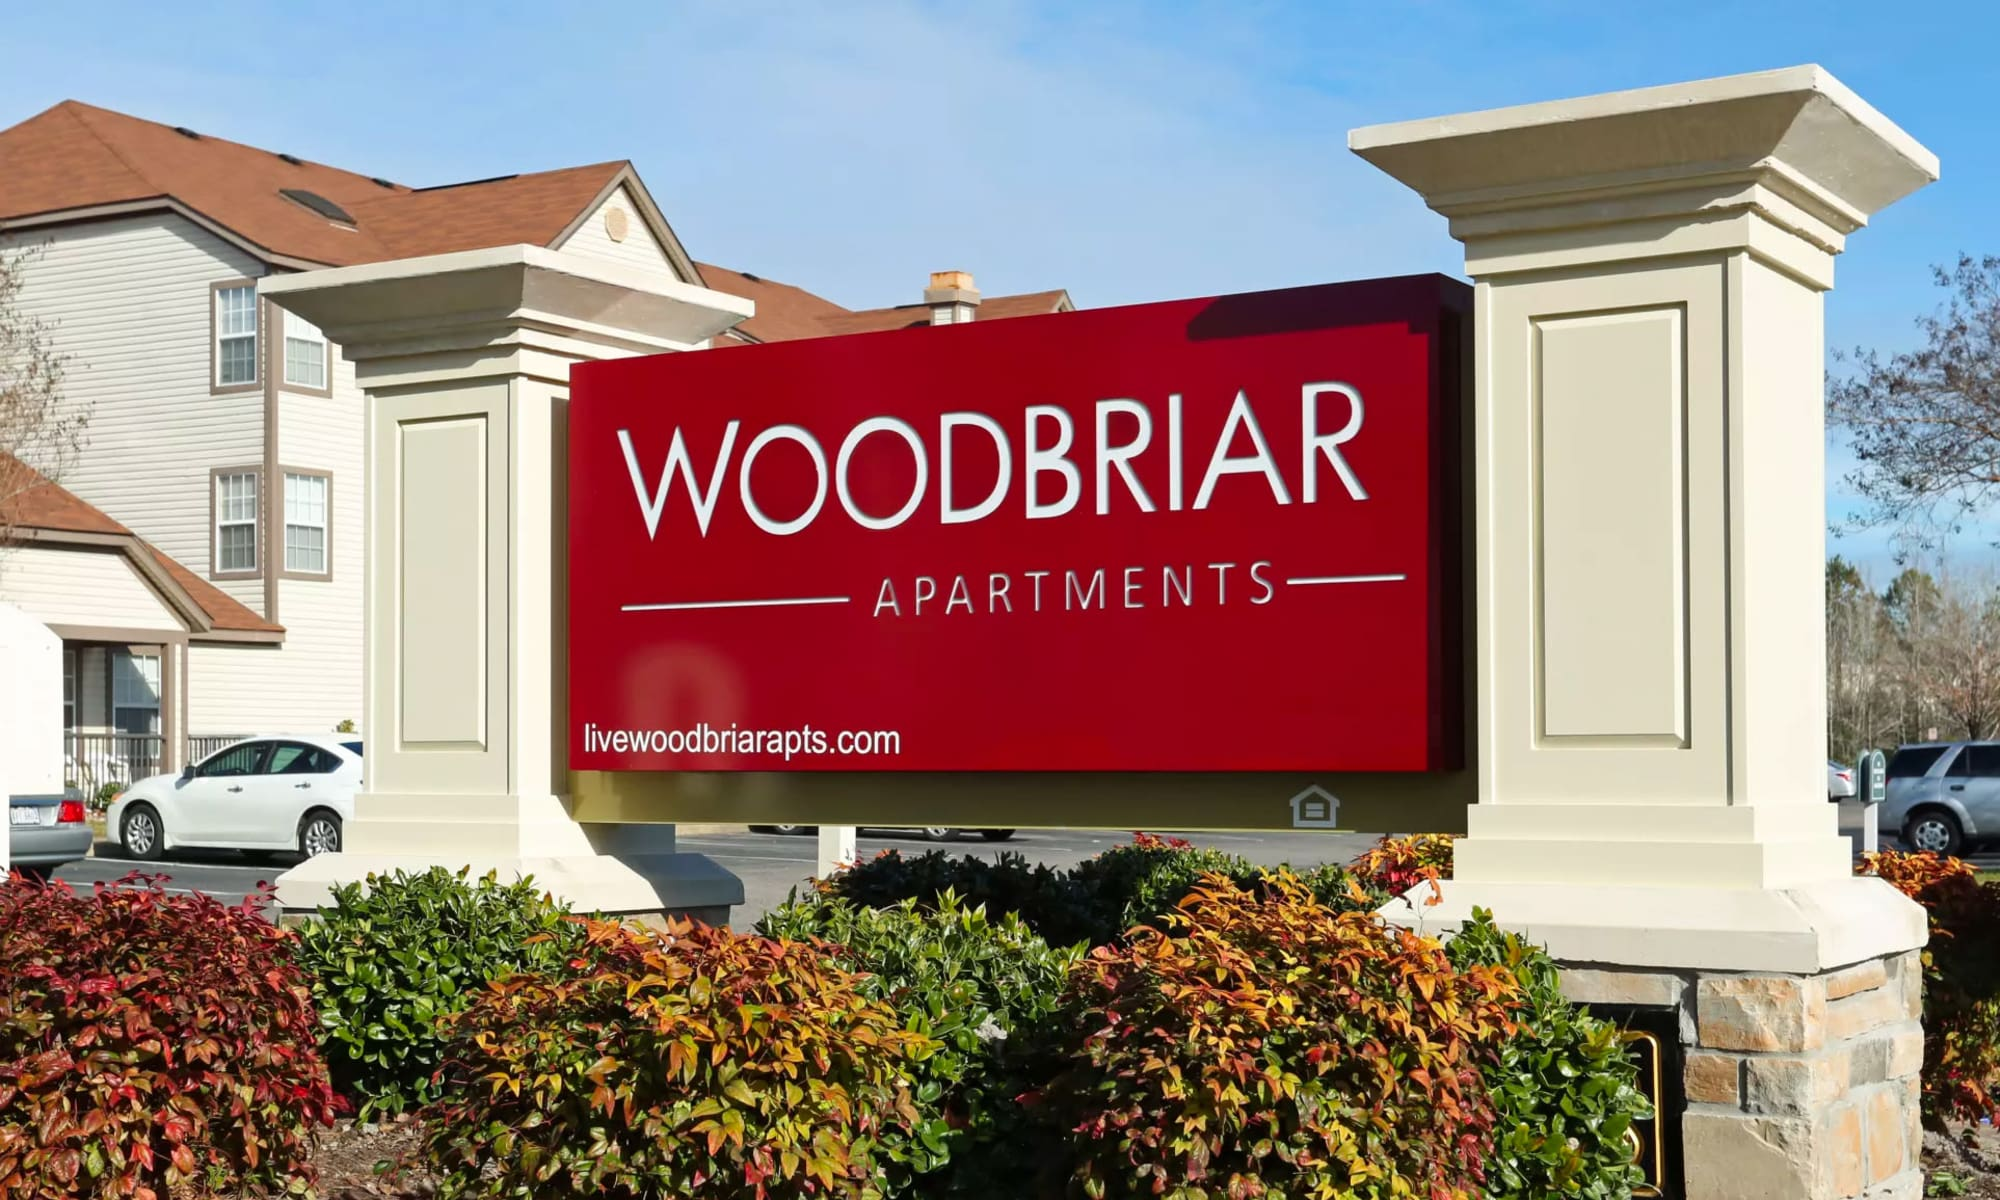 Woodbriar Apartments in Chesapeake, Virginia